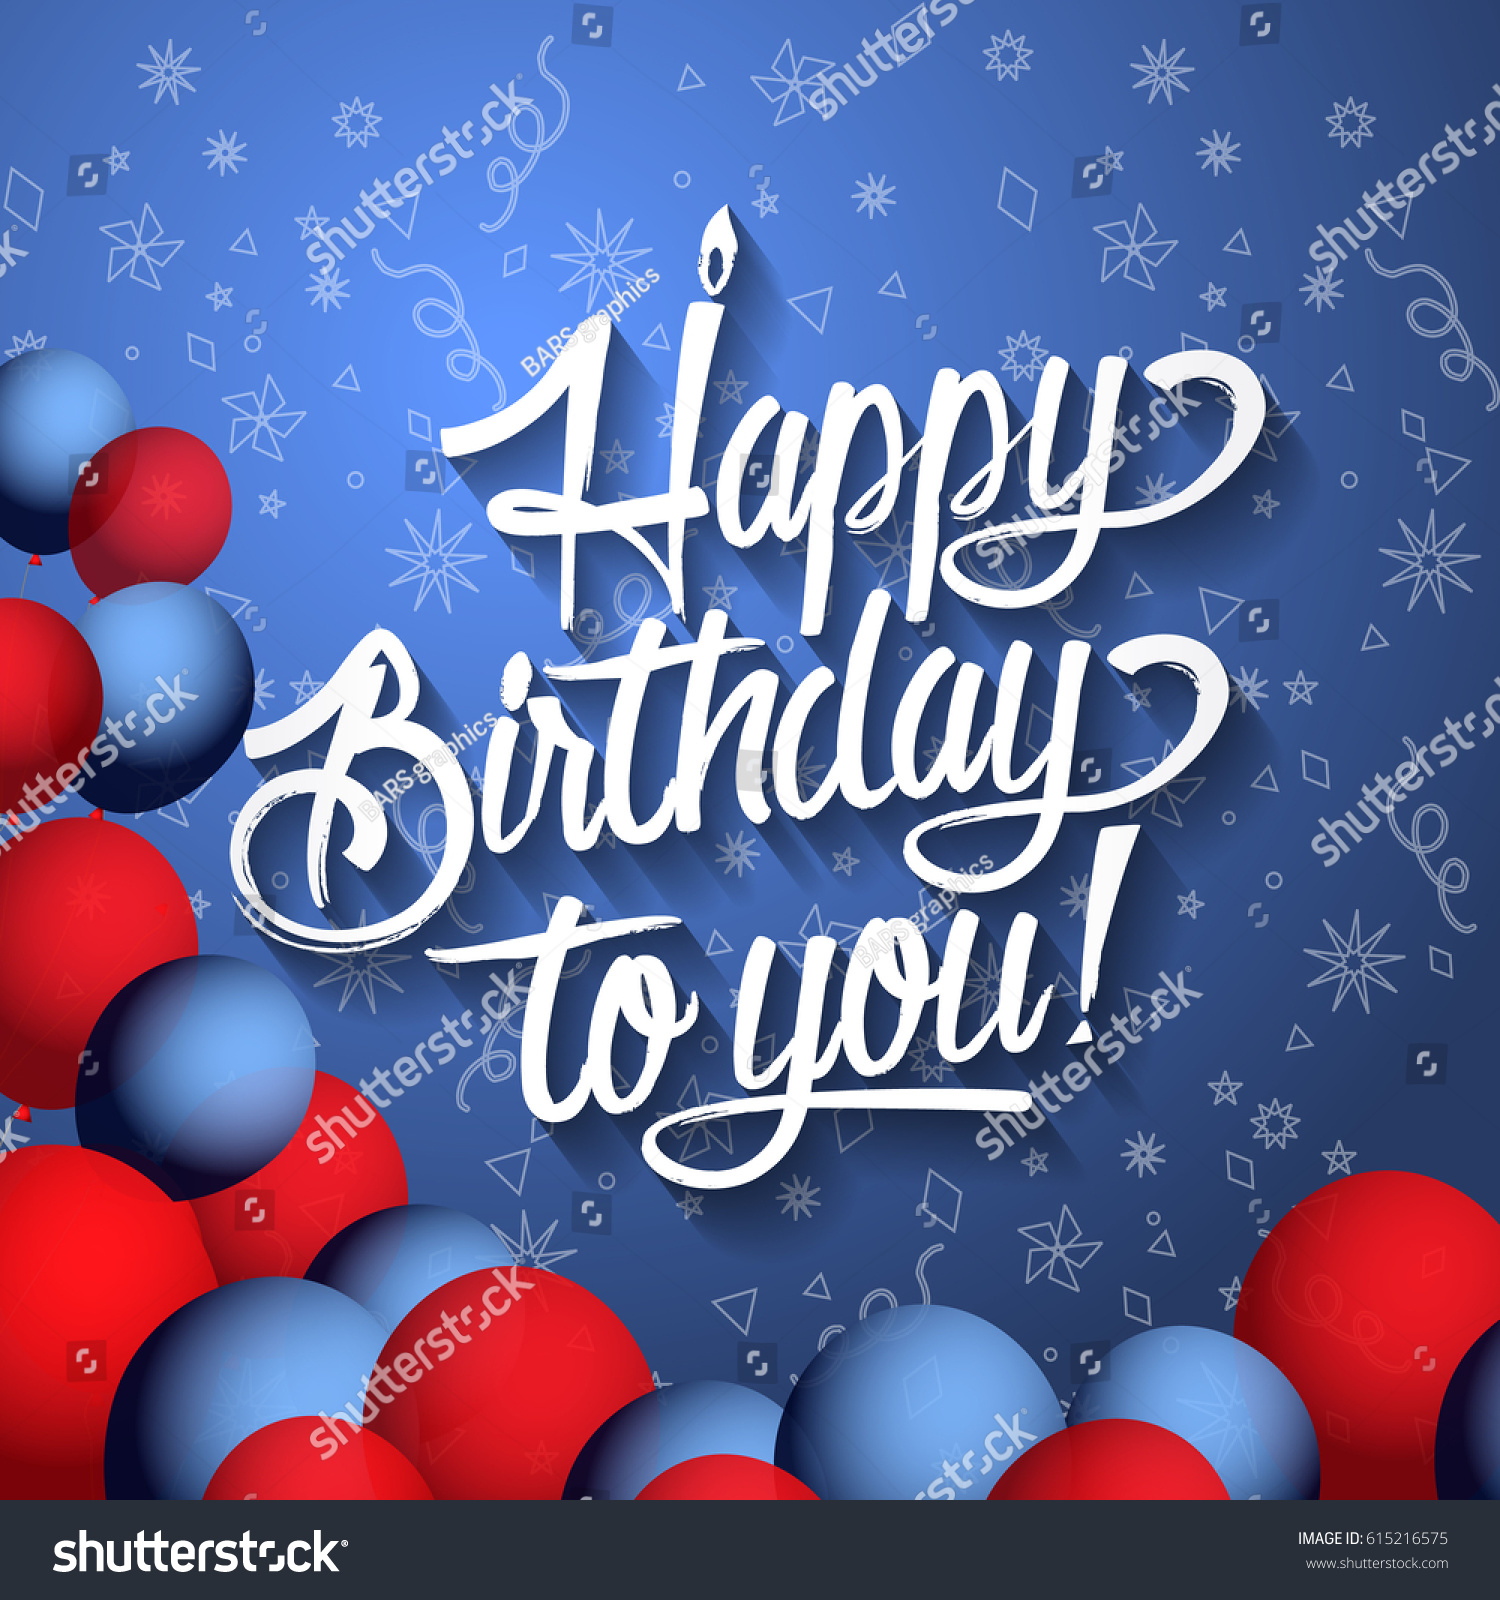 Happy birthday you lettering text illustration stock illustration happy birthday to you lettering text illustration birthday greeting card with red and blue balloons kristyandbryce Choice Image